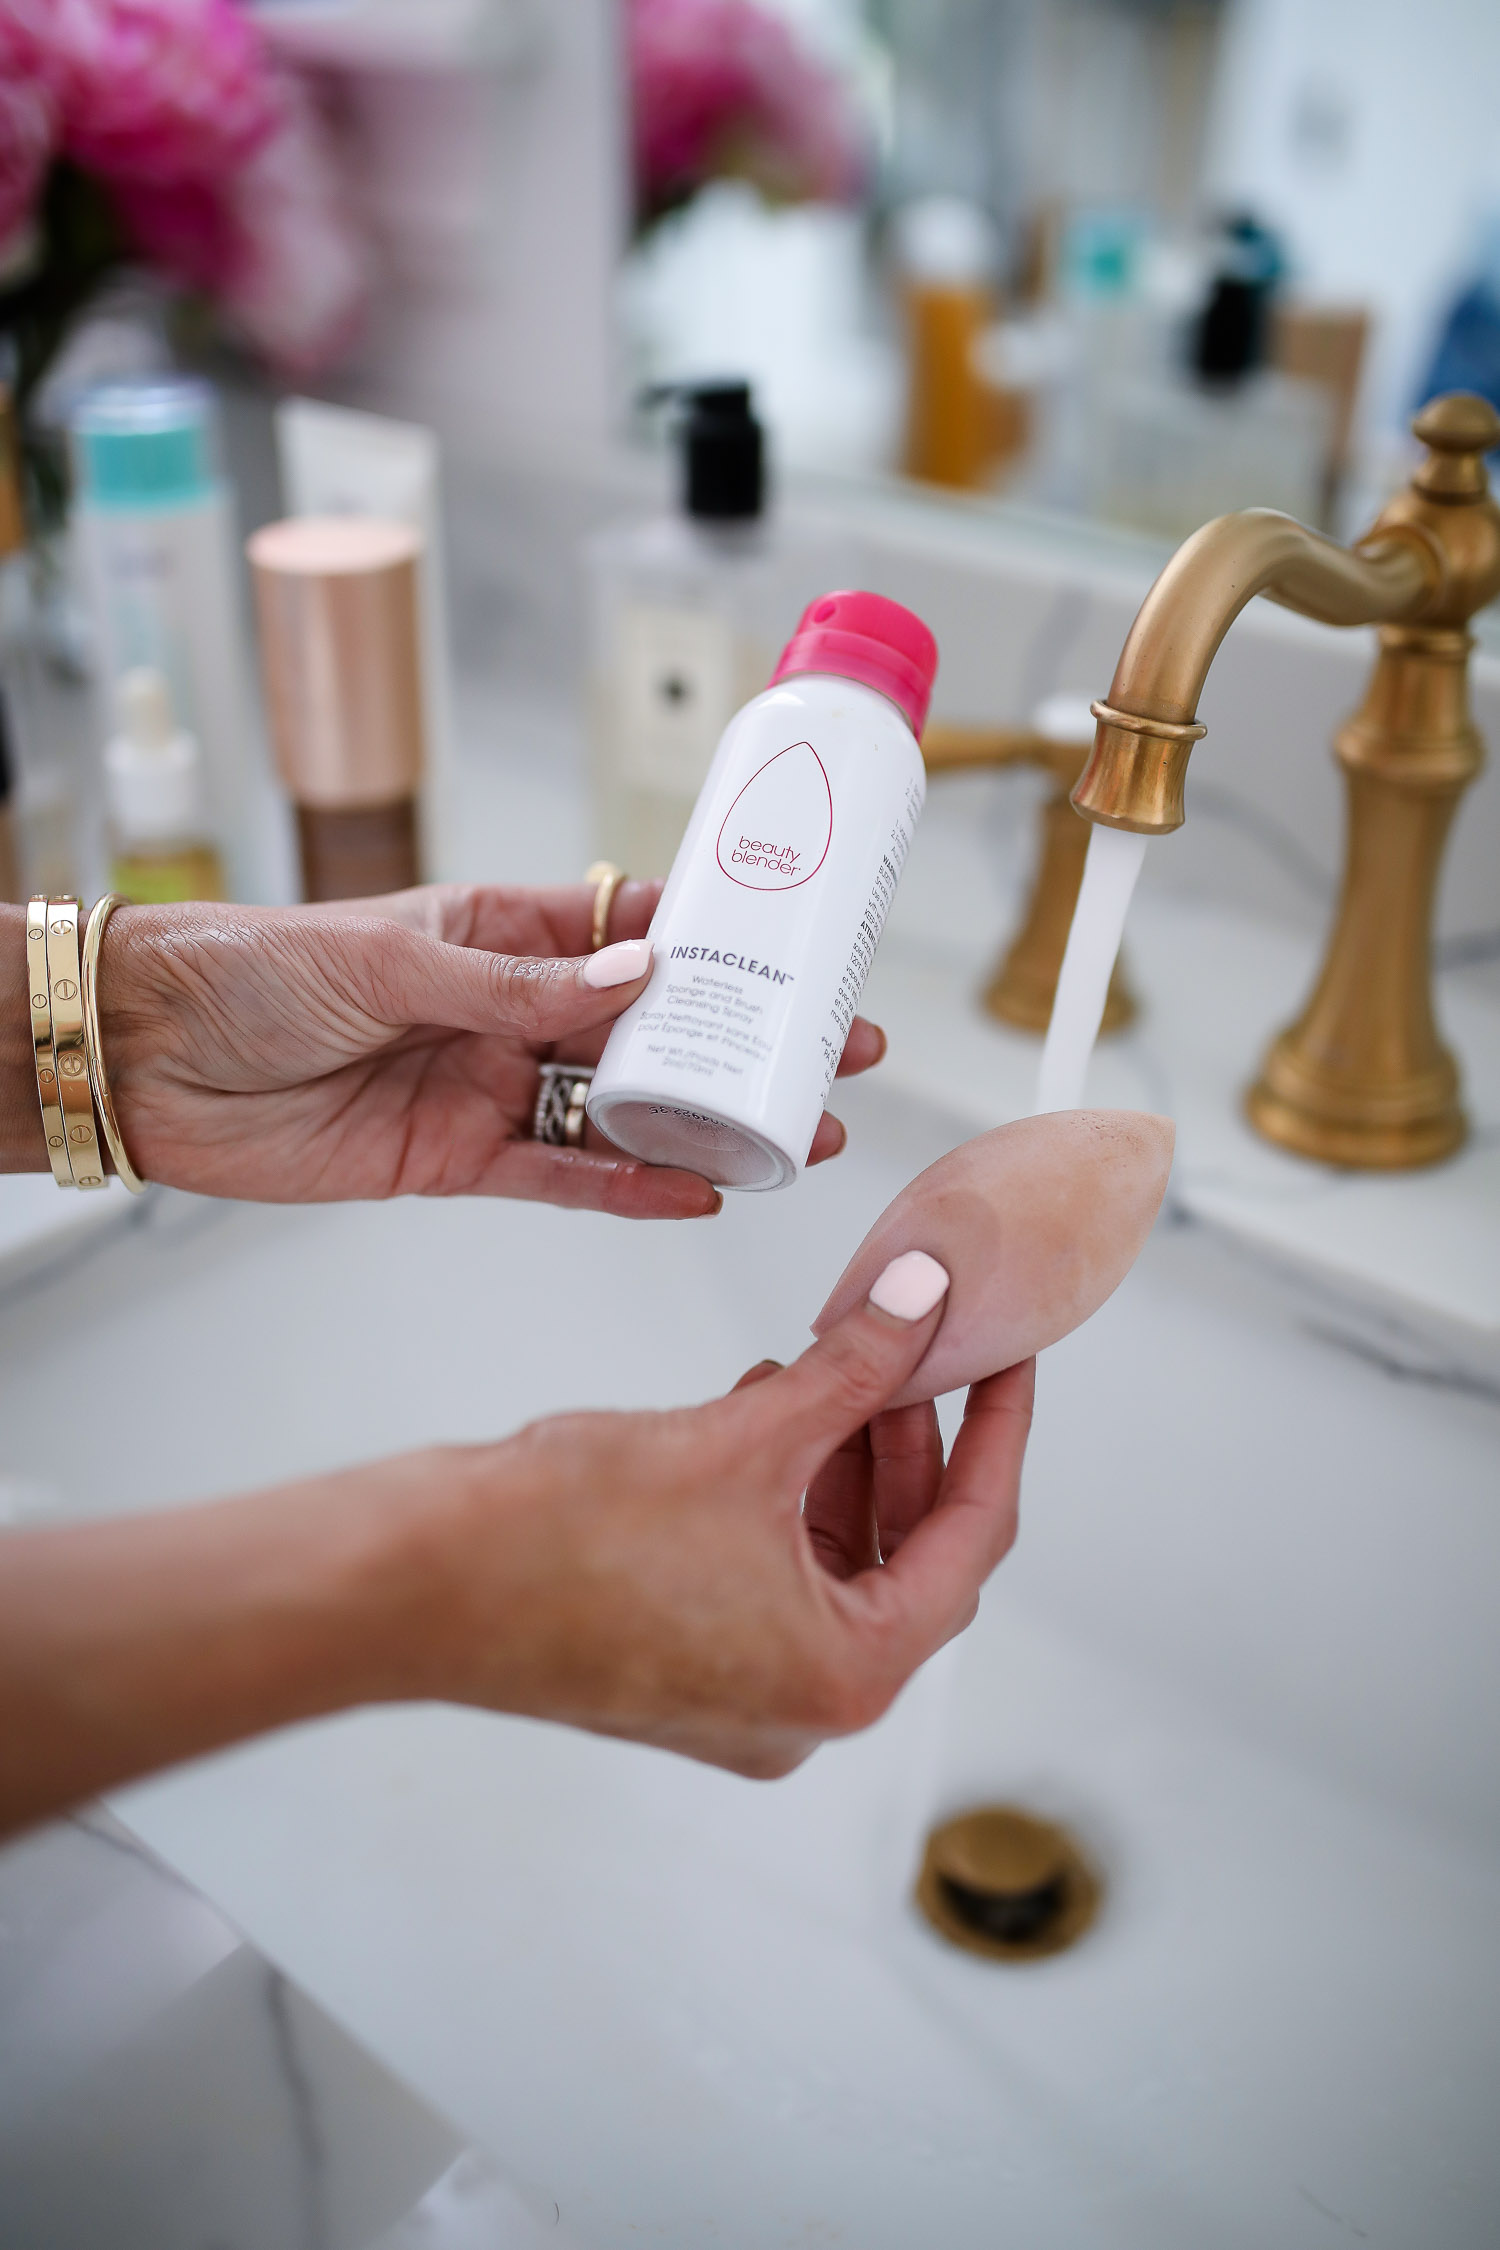 Sephora Favorites by popular US beauty blog, The Sweetest Thing: image of a woman holding a beauty blender and a bottle of beauty blender cleaner.